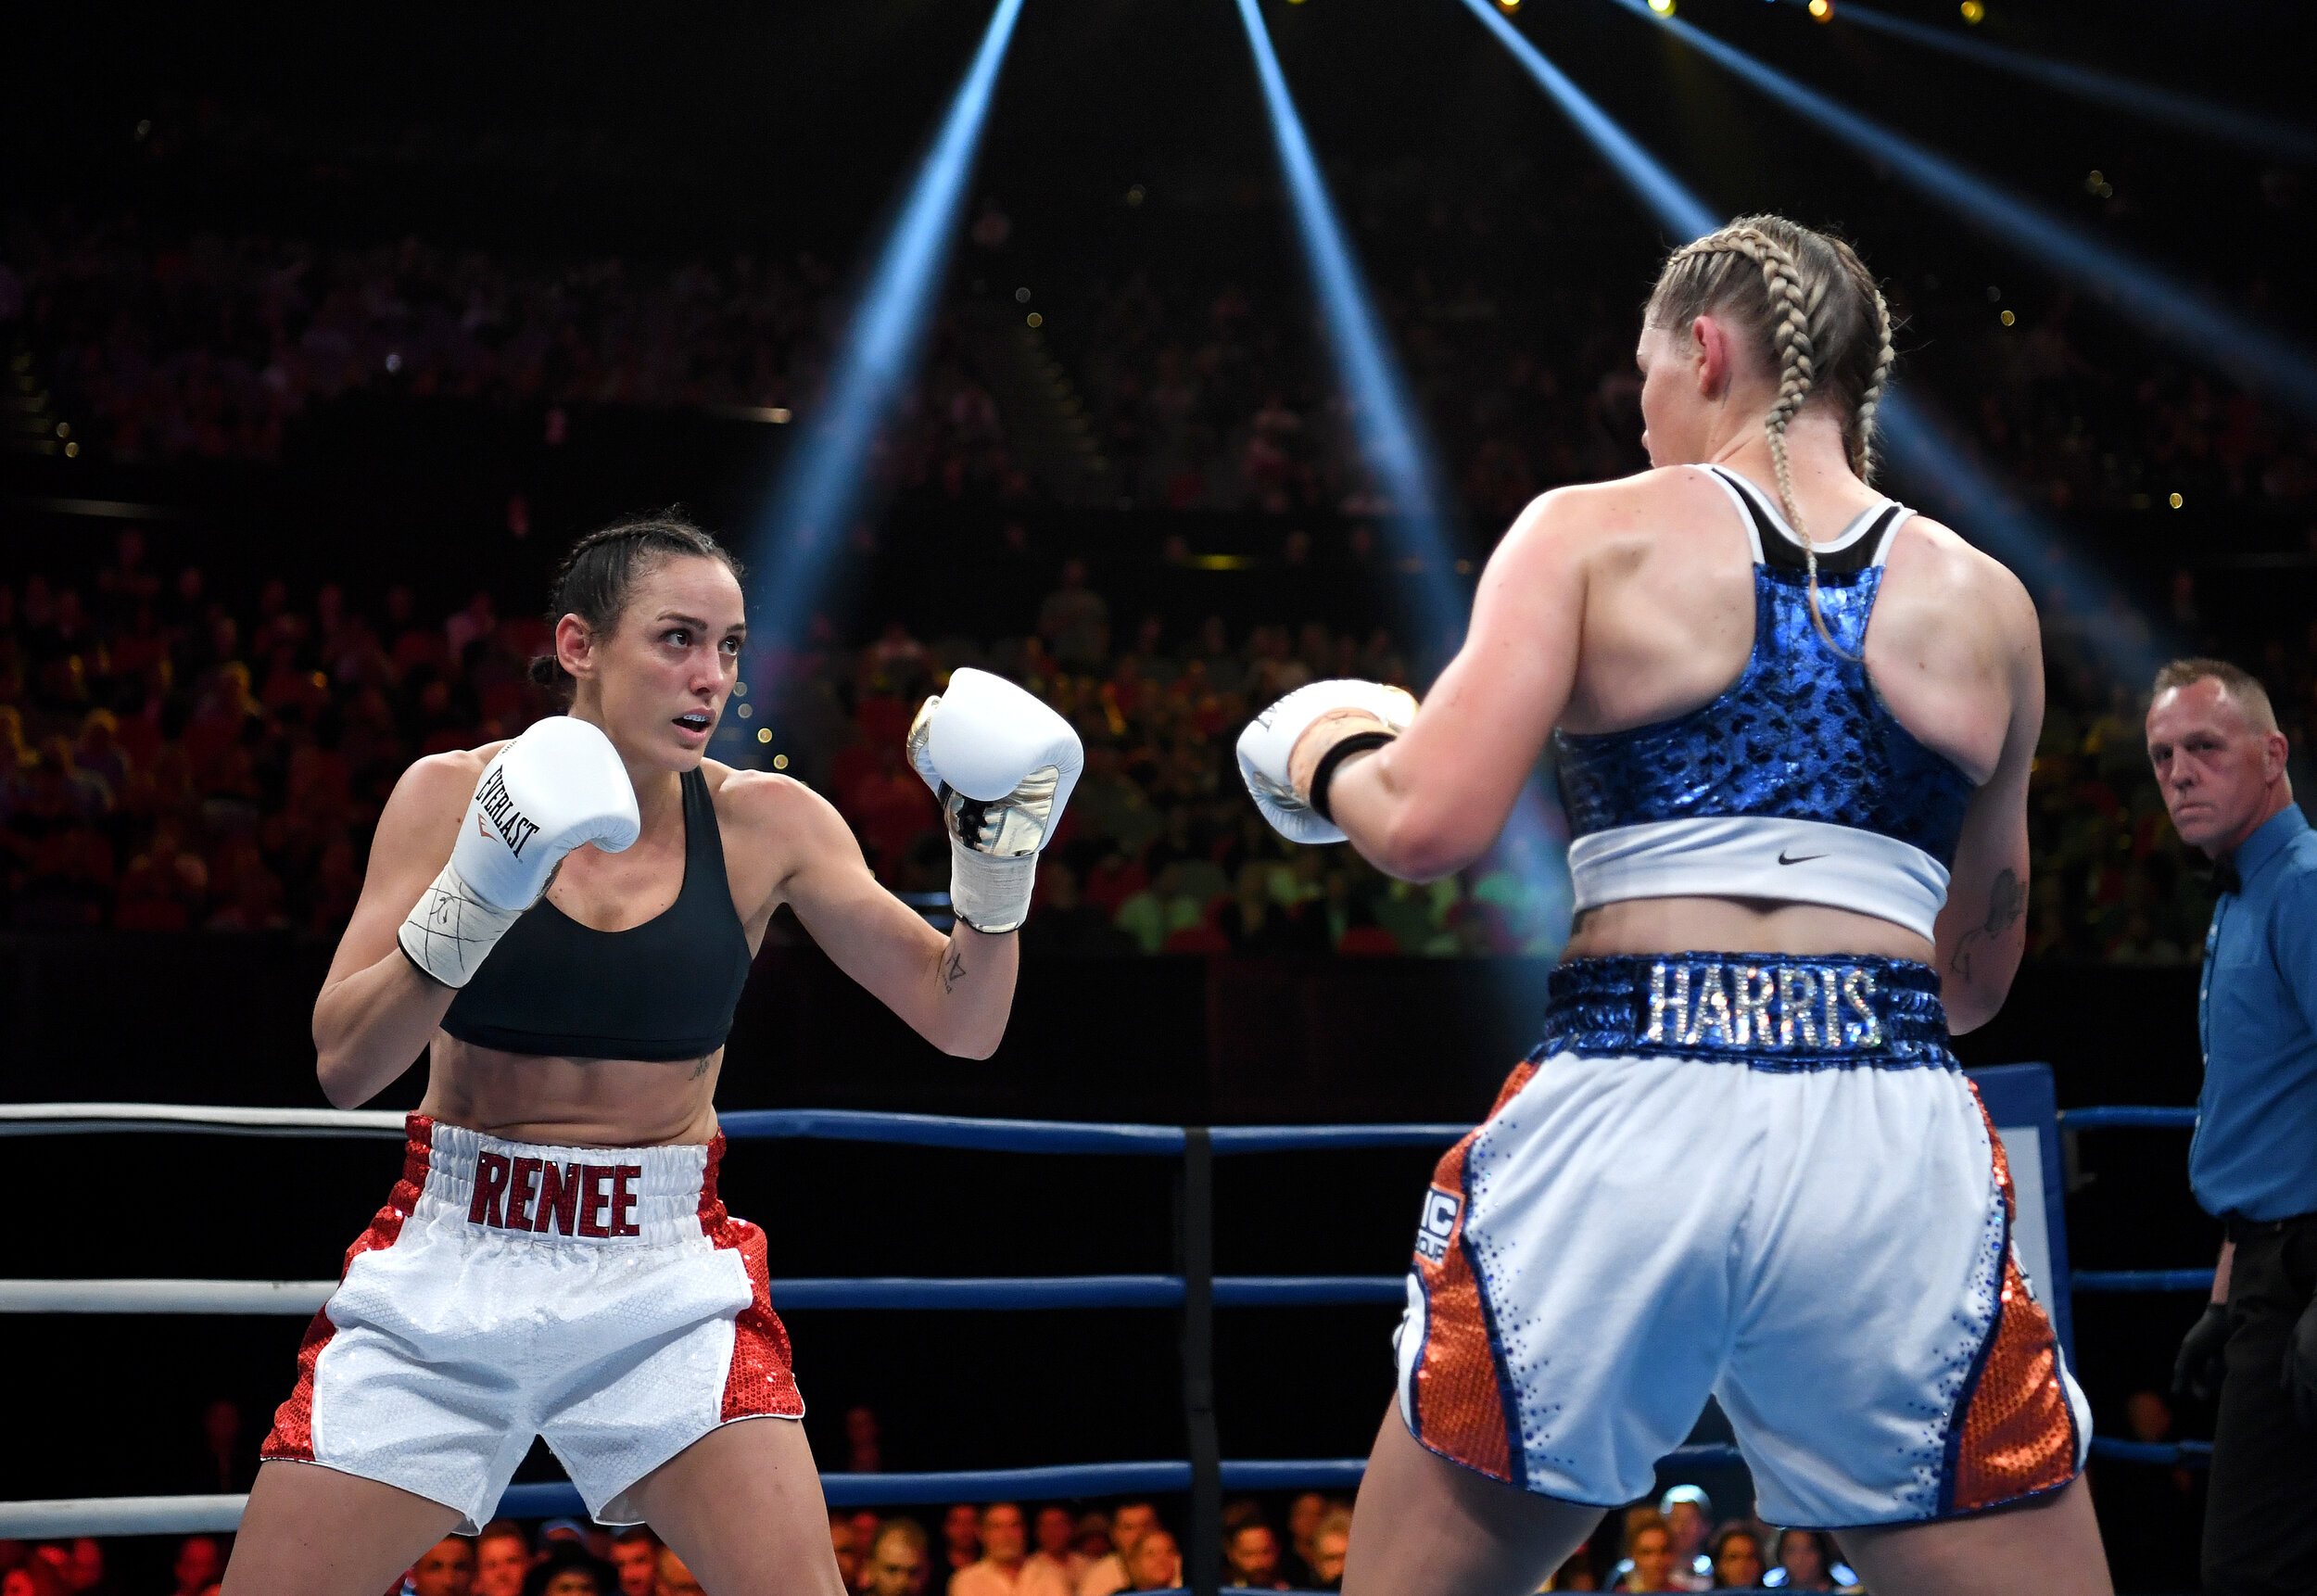 Tayla Harris v Renee Gartner  1GP_8824.jpg